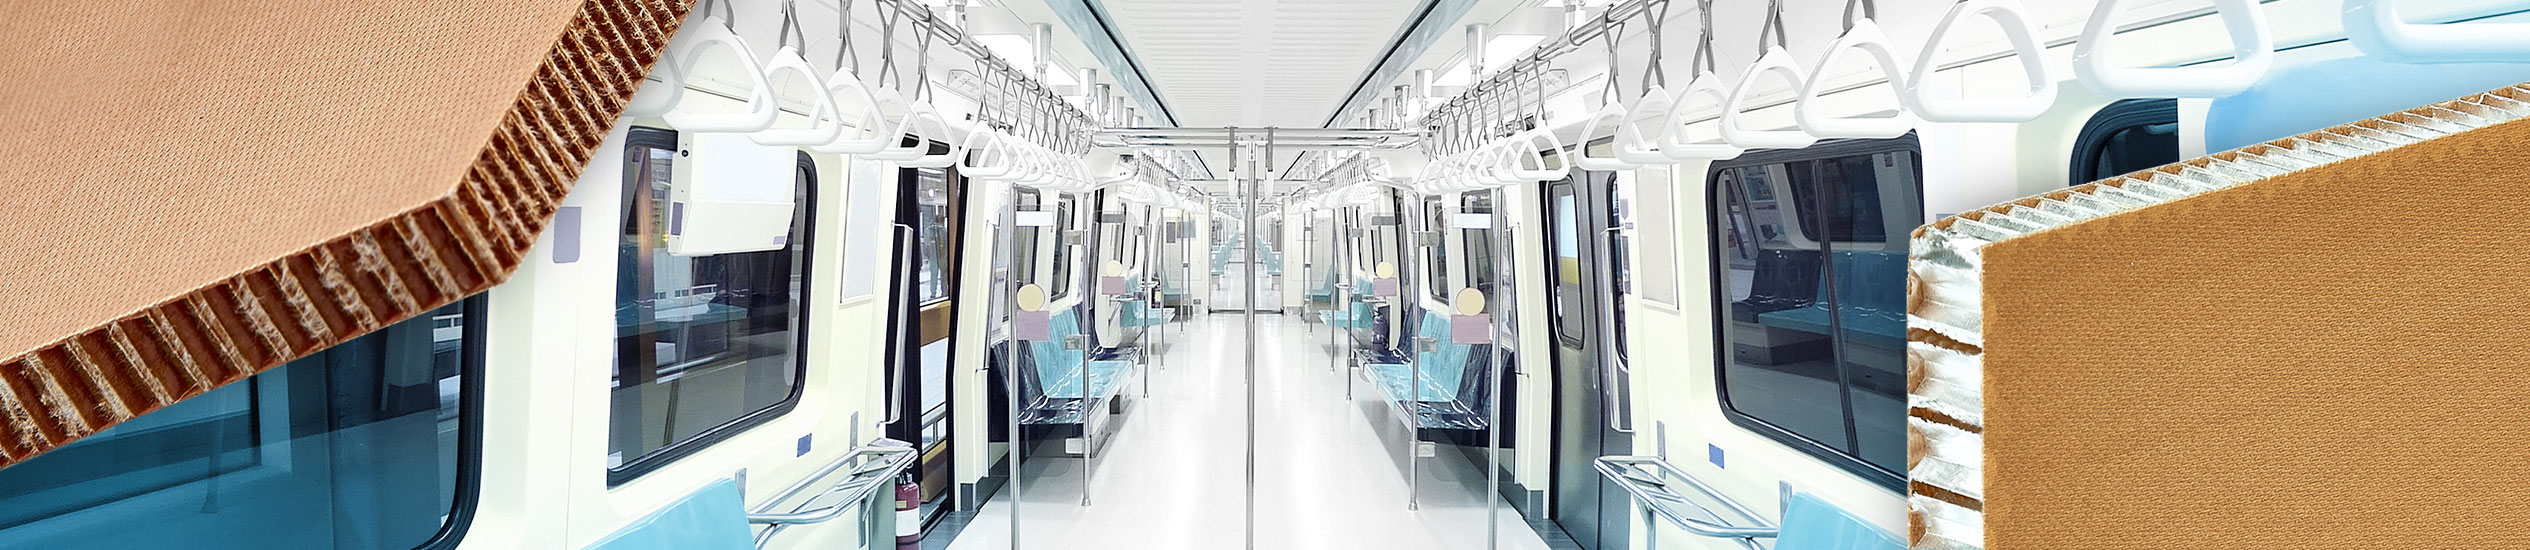 In the railway sector, lightweight panels are used as partitions, ceilings, floors, bulkheads and tables or interiors in general.